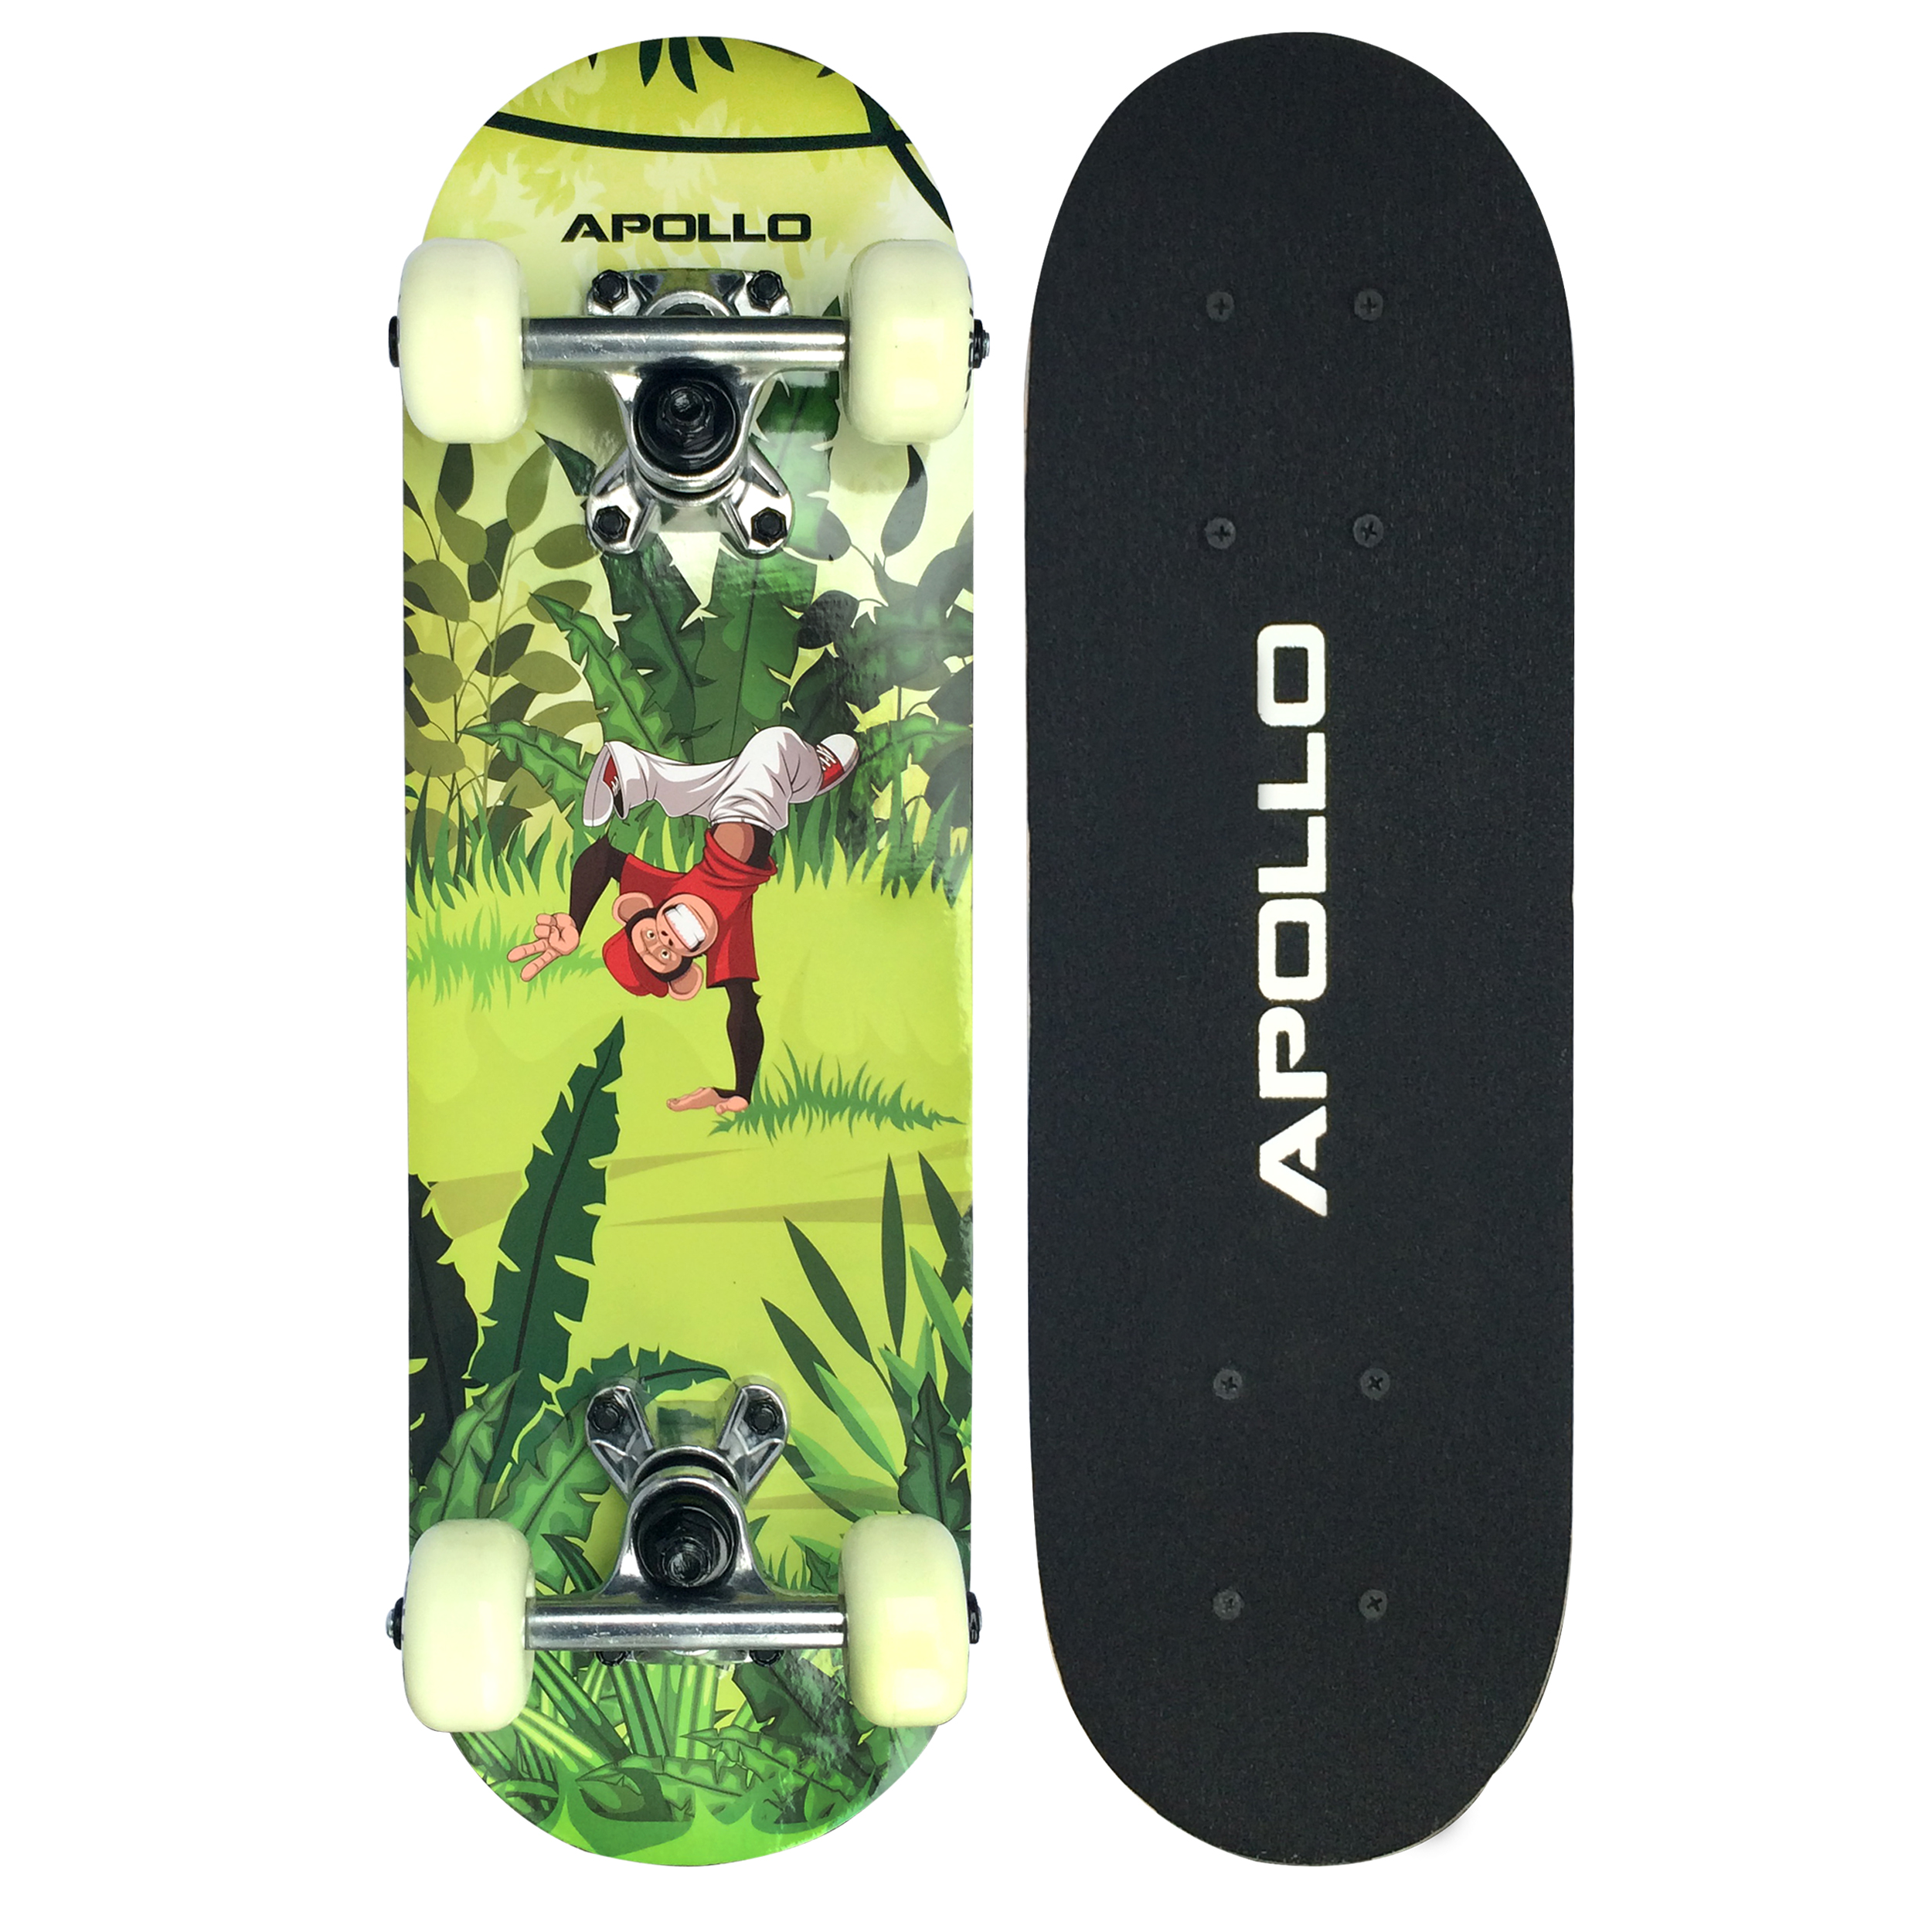 Apollo Skateboard - Monkey Man - Kinderskateboard 51cm